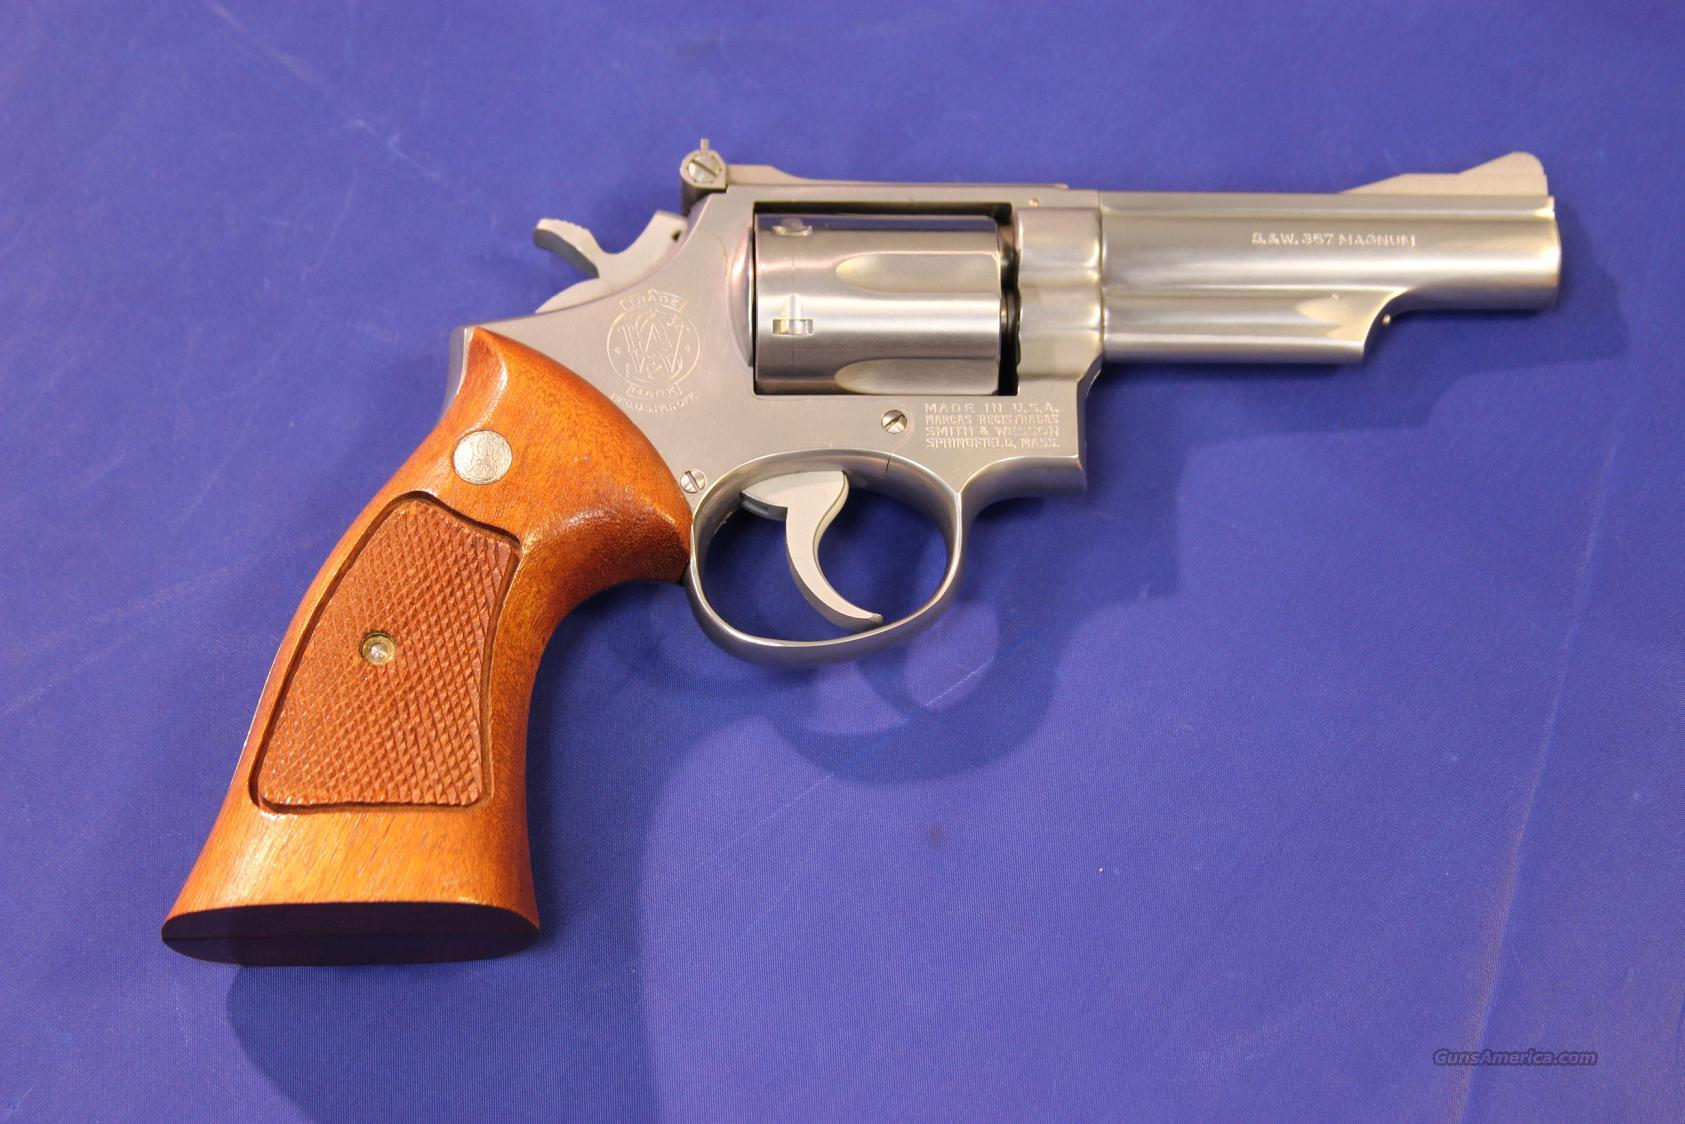 ***SOLD*** SMITH & WESSON 66 .357 MAG W/BOX  Guns > Pistols > Smith & Wesson Revolvers > Full Frame Revolver